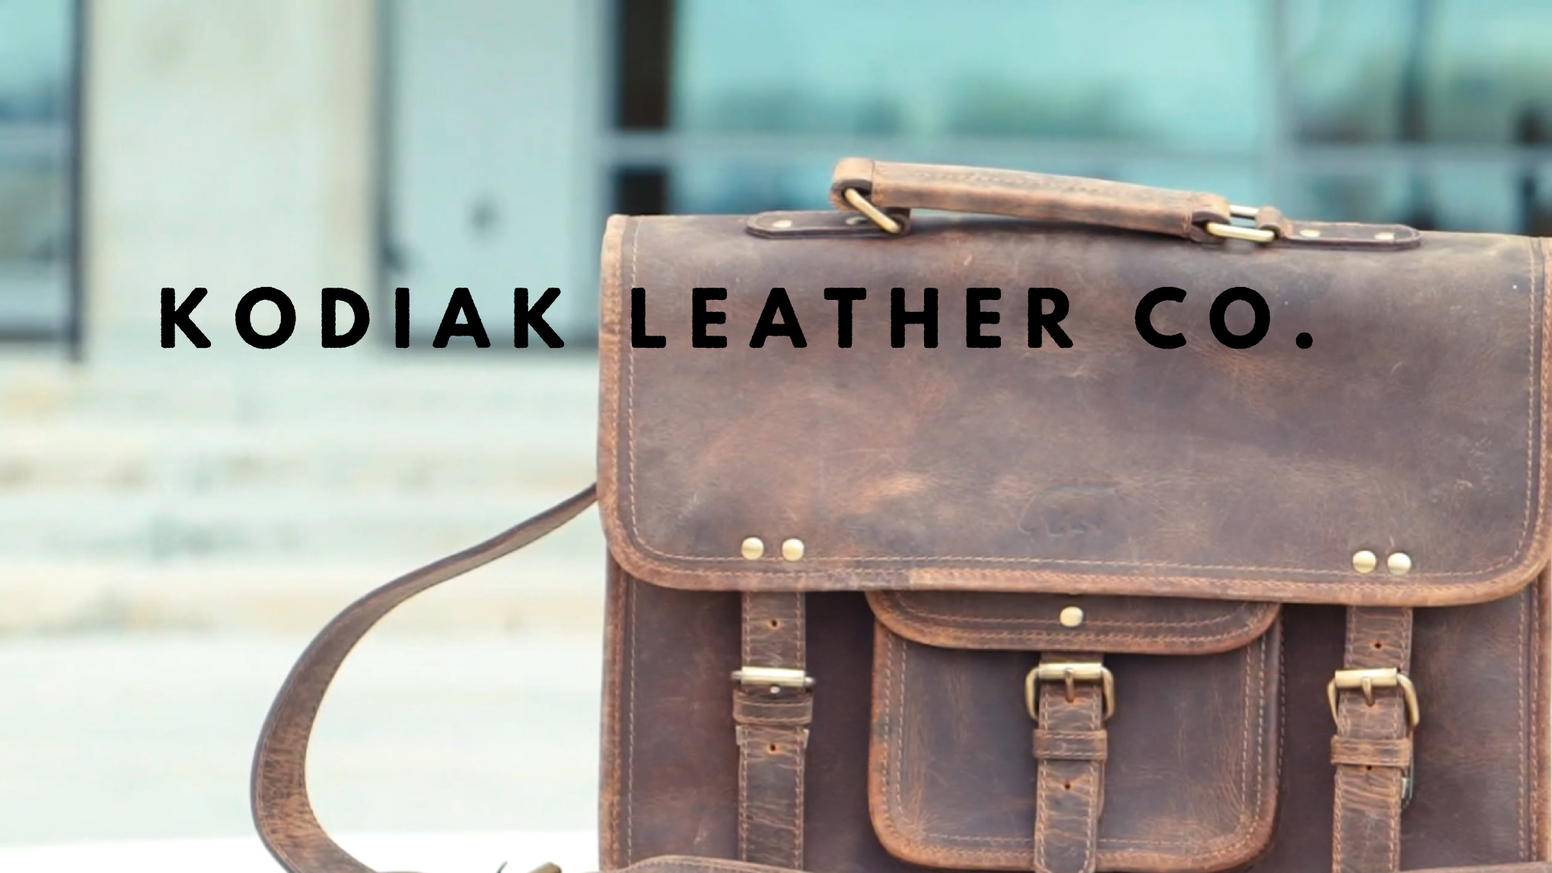 Genuine Buffalo Leather. Still accepting Pre-Orders for a limited time.